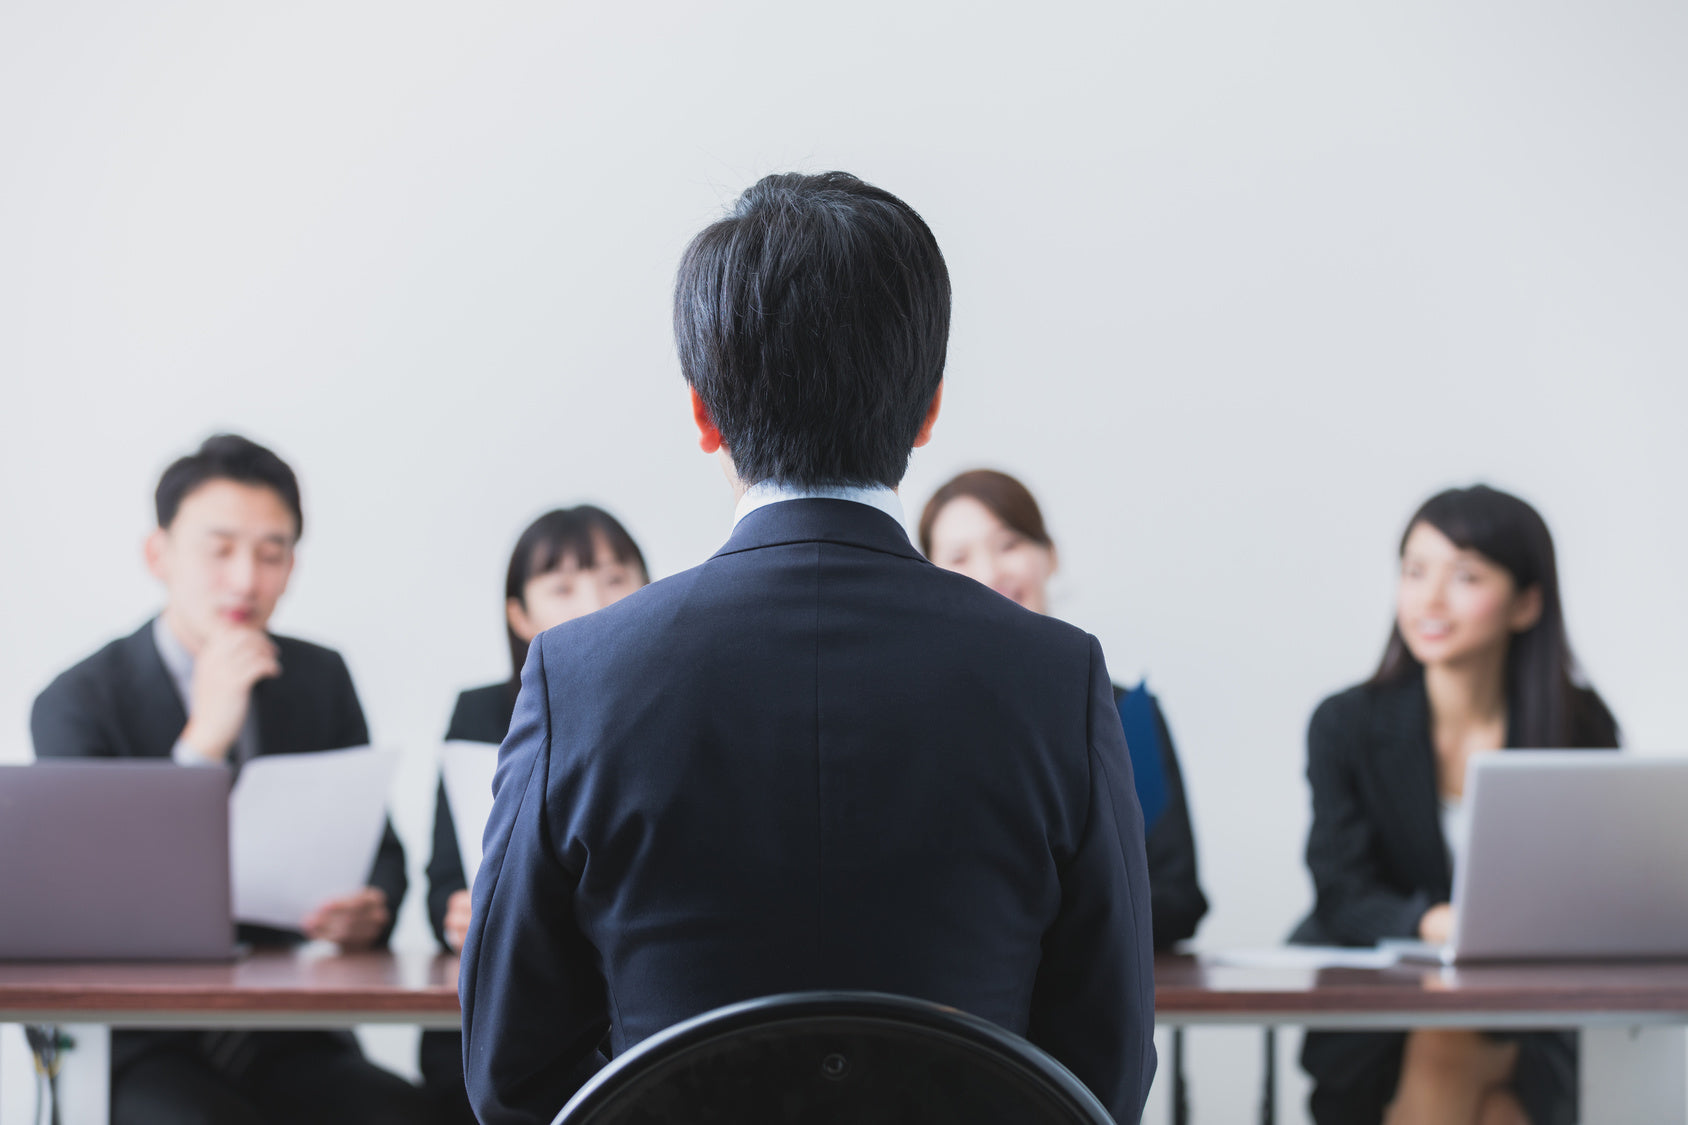 nootropics for job interviews can help with anxiety, verbal and more